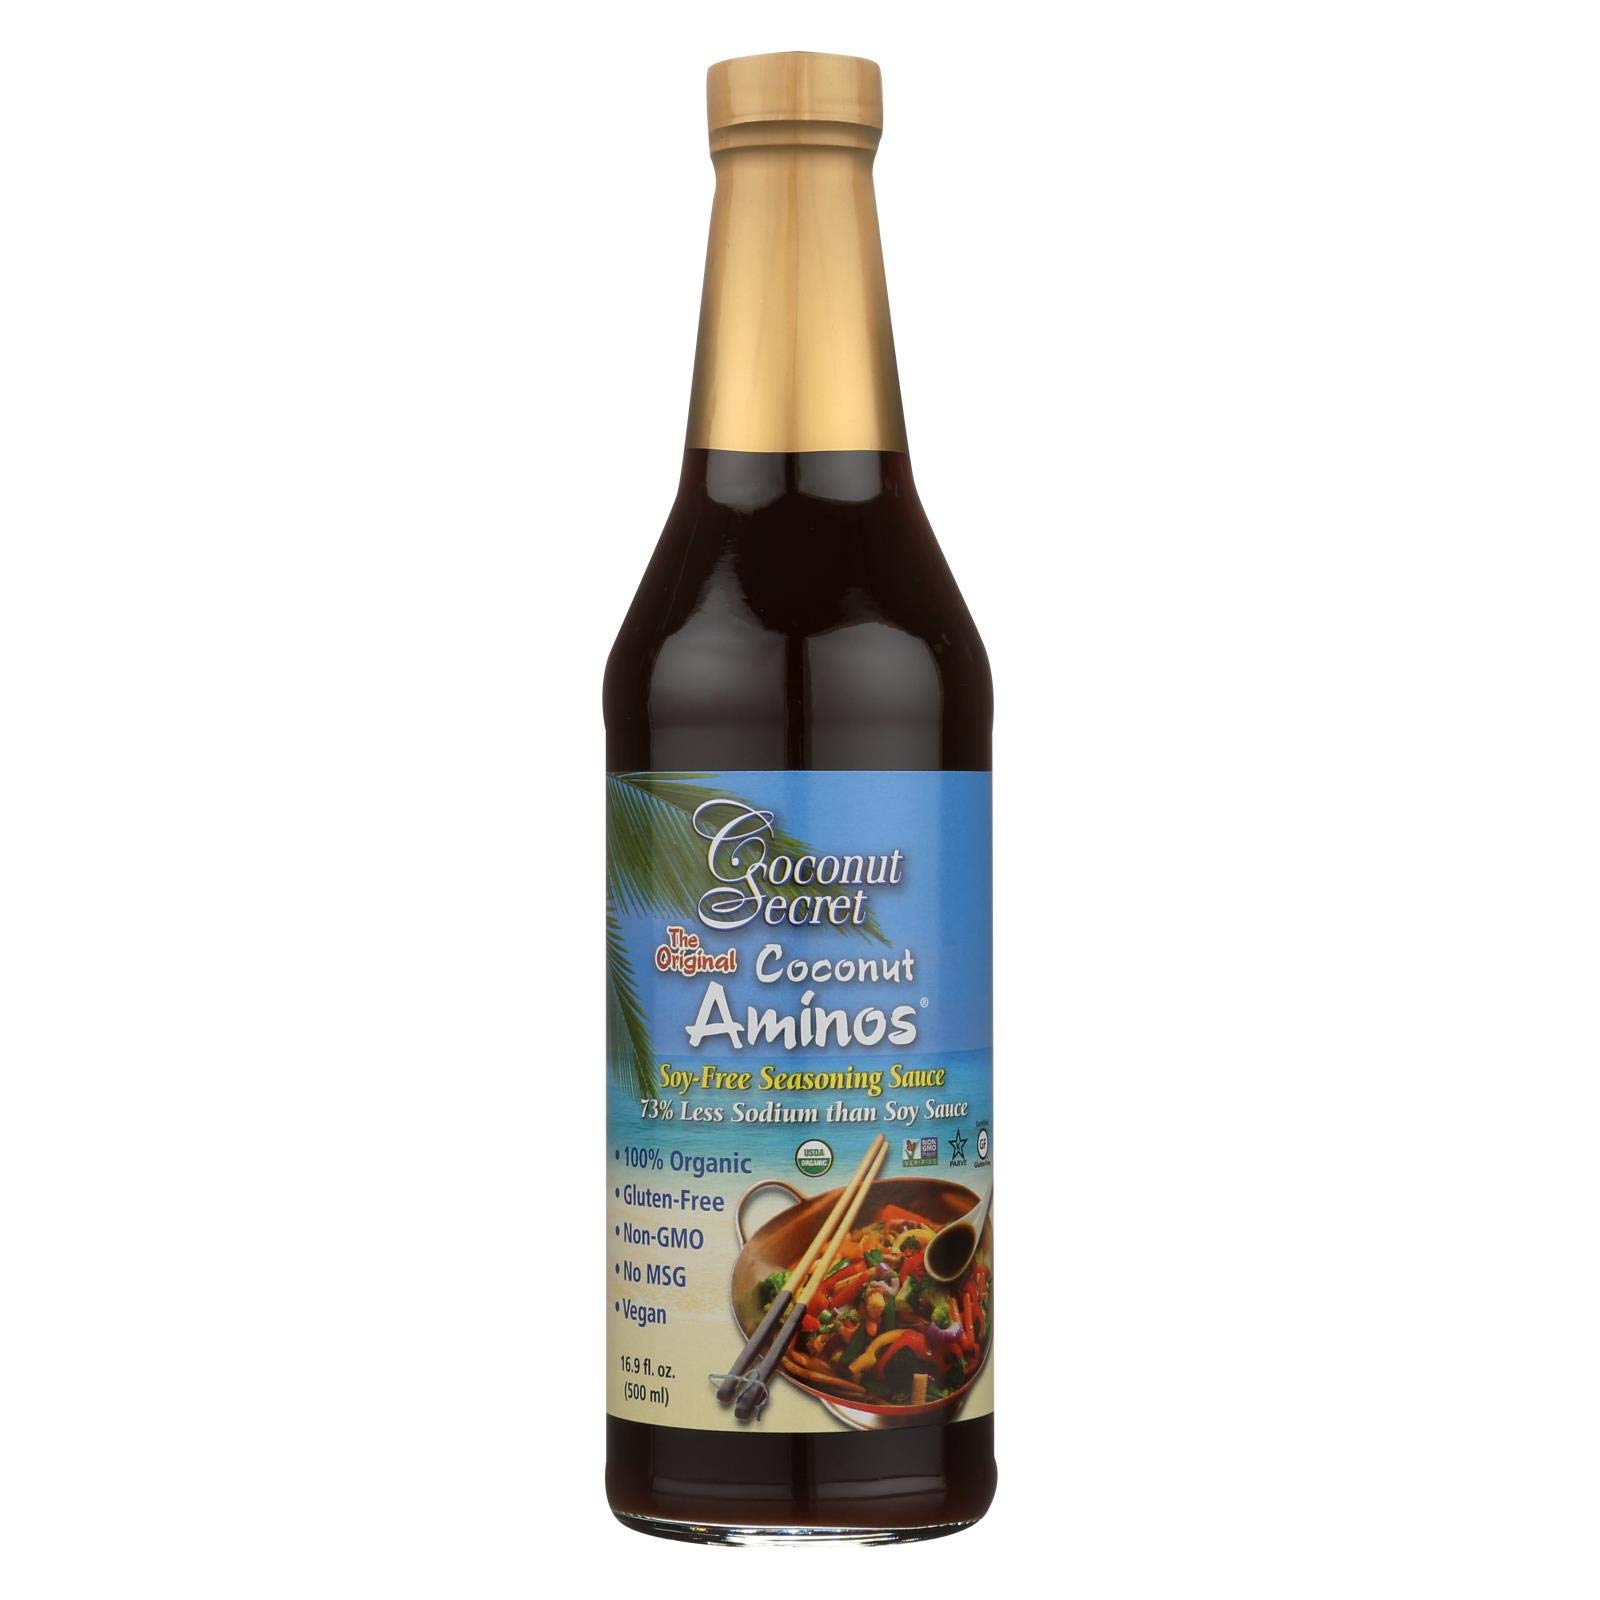 Coconut Aminos Soy Free Seasoning Sauce 16.90 Ounces (Pack of 6) by COCONUT SECRET